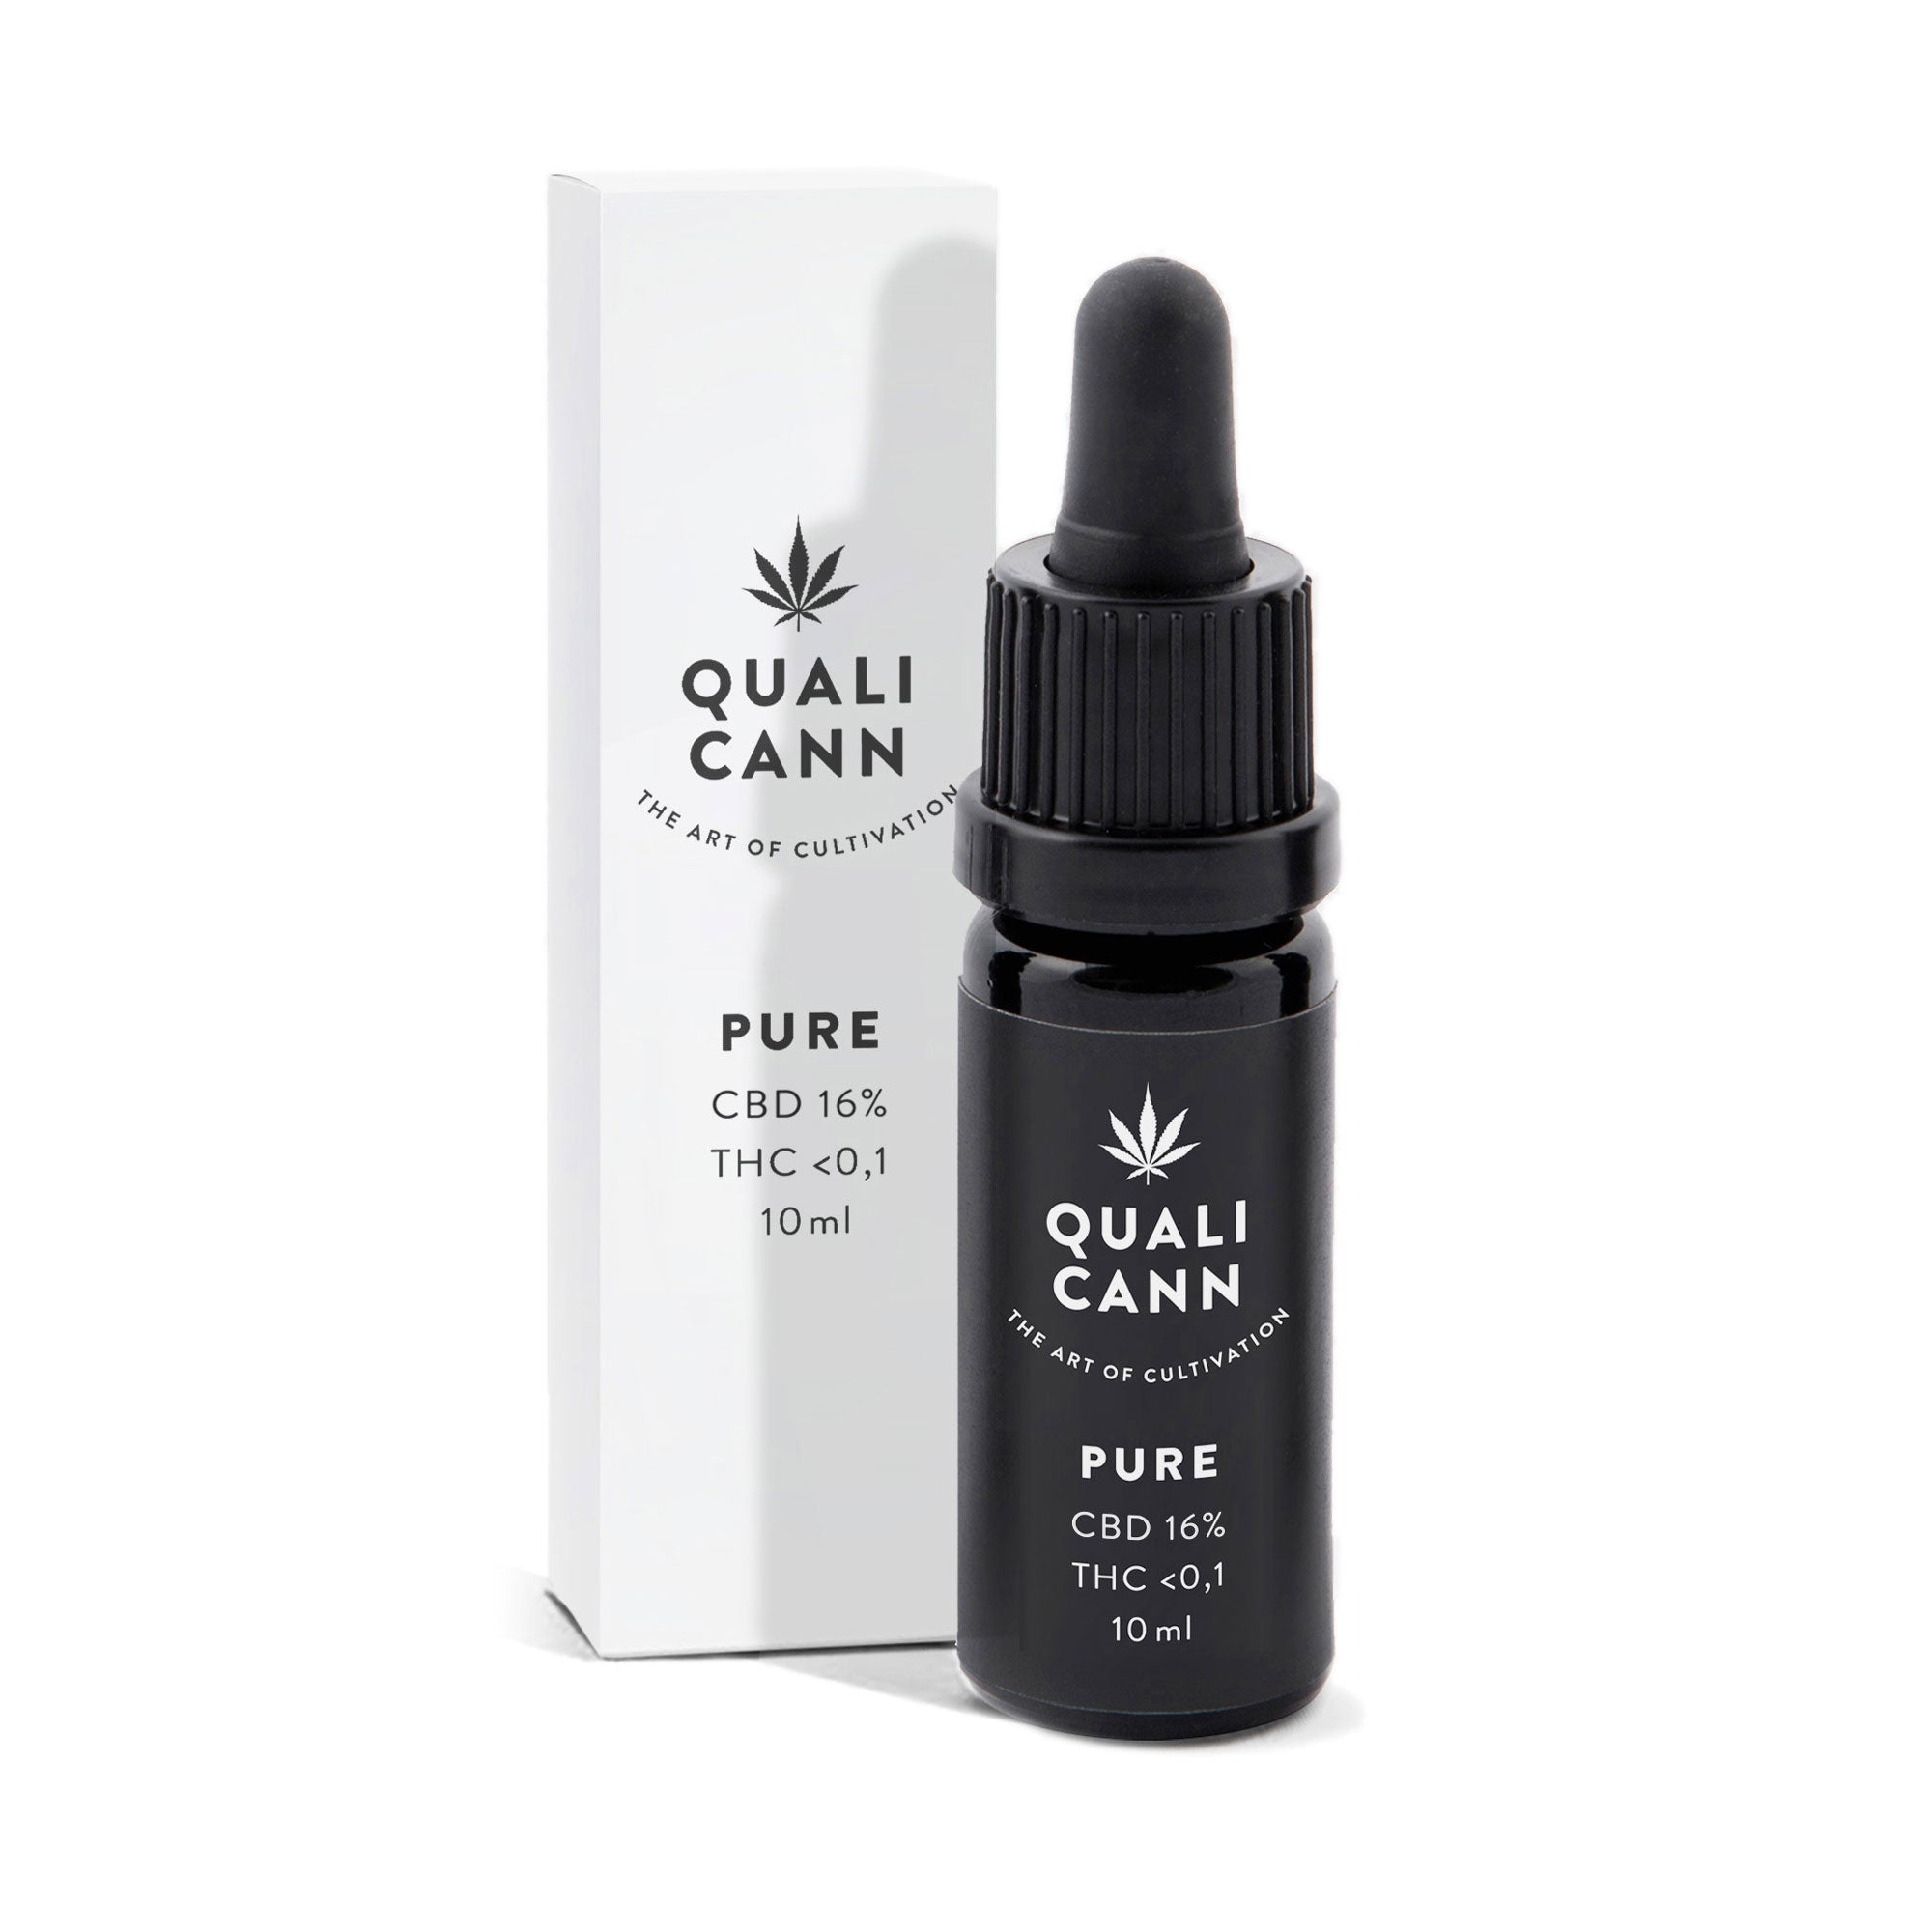 Pure 16% - CBD Oil (1600mg)-CBD oil-Qualicann-Swiss CBD Shop-uWeed